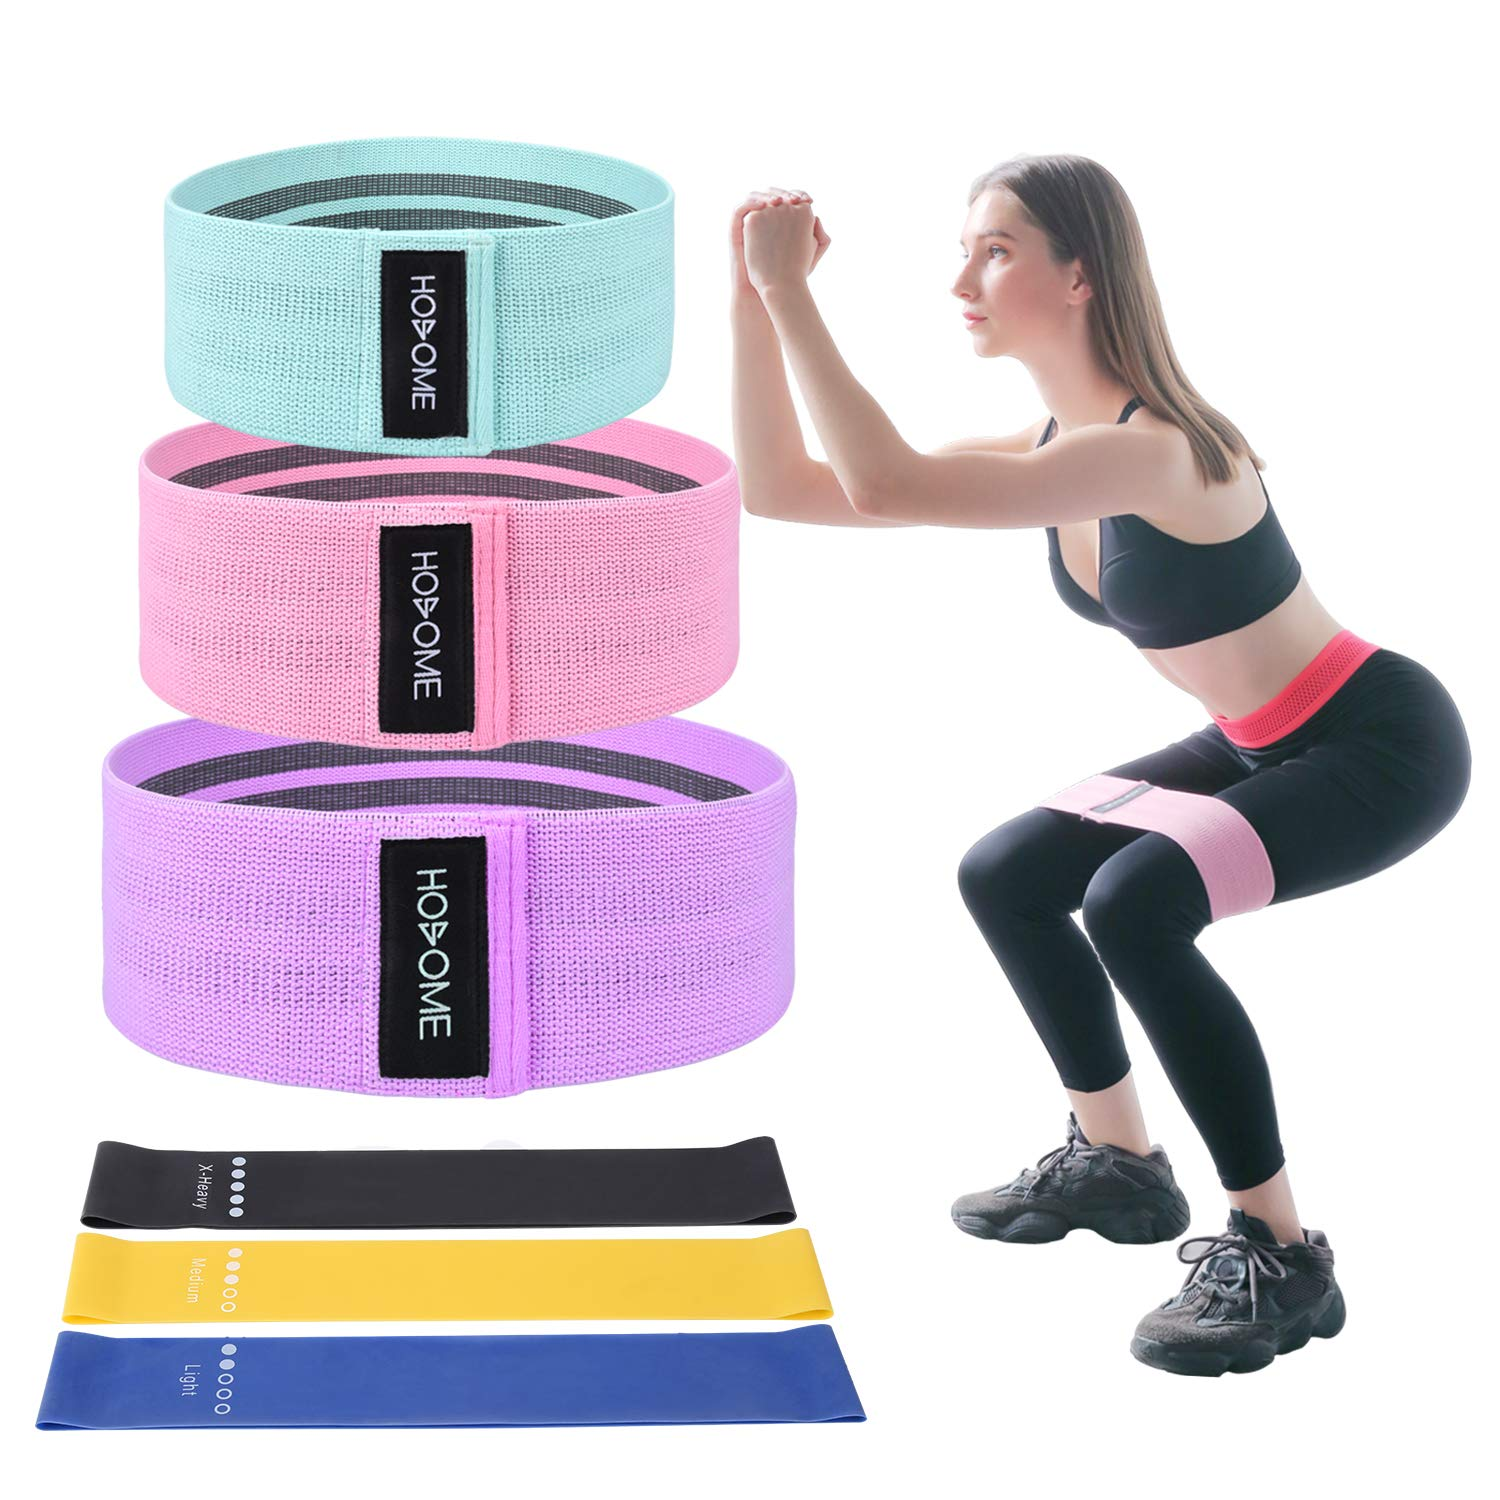 Hosome Fitnessbänder Set, 6er Set Widerstandsbänder, 3 Set Fabric Loop Bänder und 3 Set Gymnastikband aus Latex Elastisch Trainingsbänder